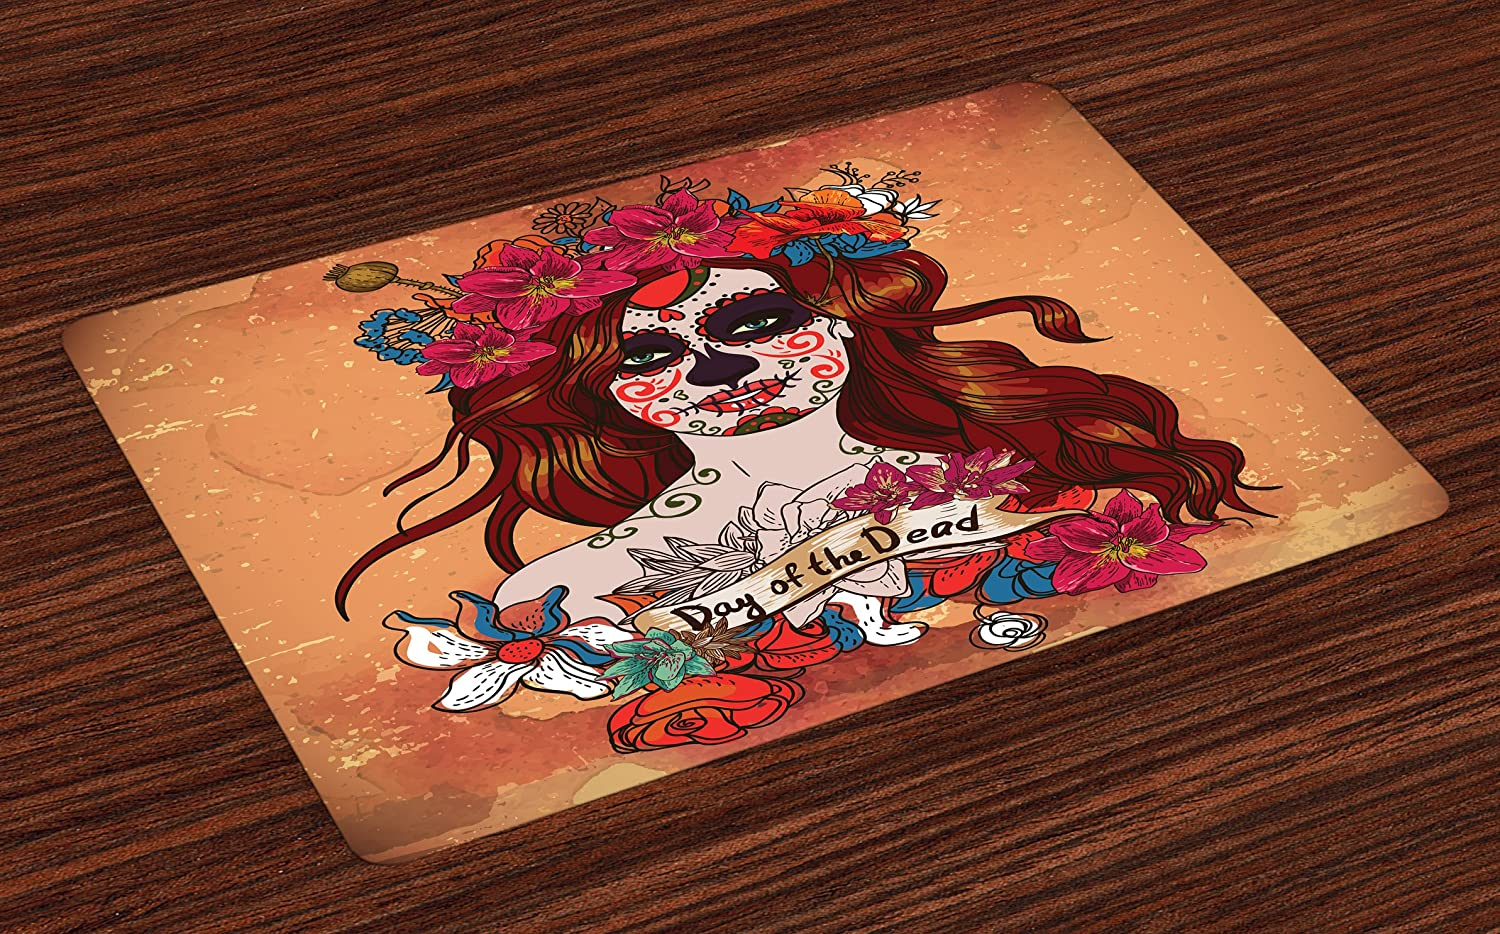 Ambesonne Day of The Dead Place Mats Set of 4, Dia de Los Muertos Spanish Culture Mexican Festive Skull Art, Washable Fabric Placemats for Dining Room Kitchen Table Decor, Cinnamon Magenta Maroon